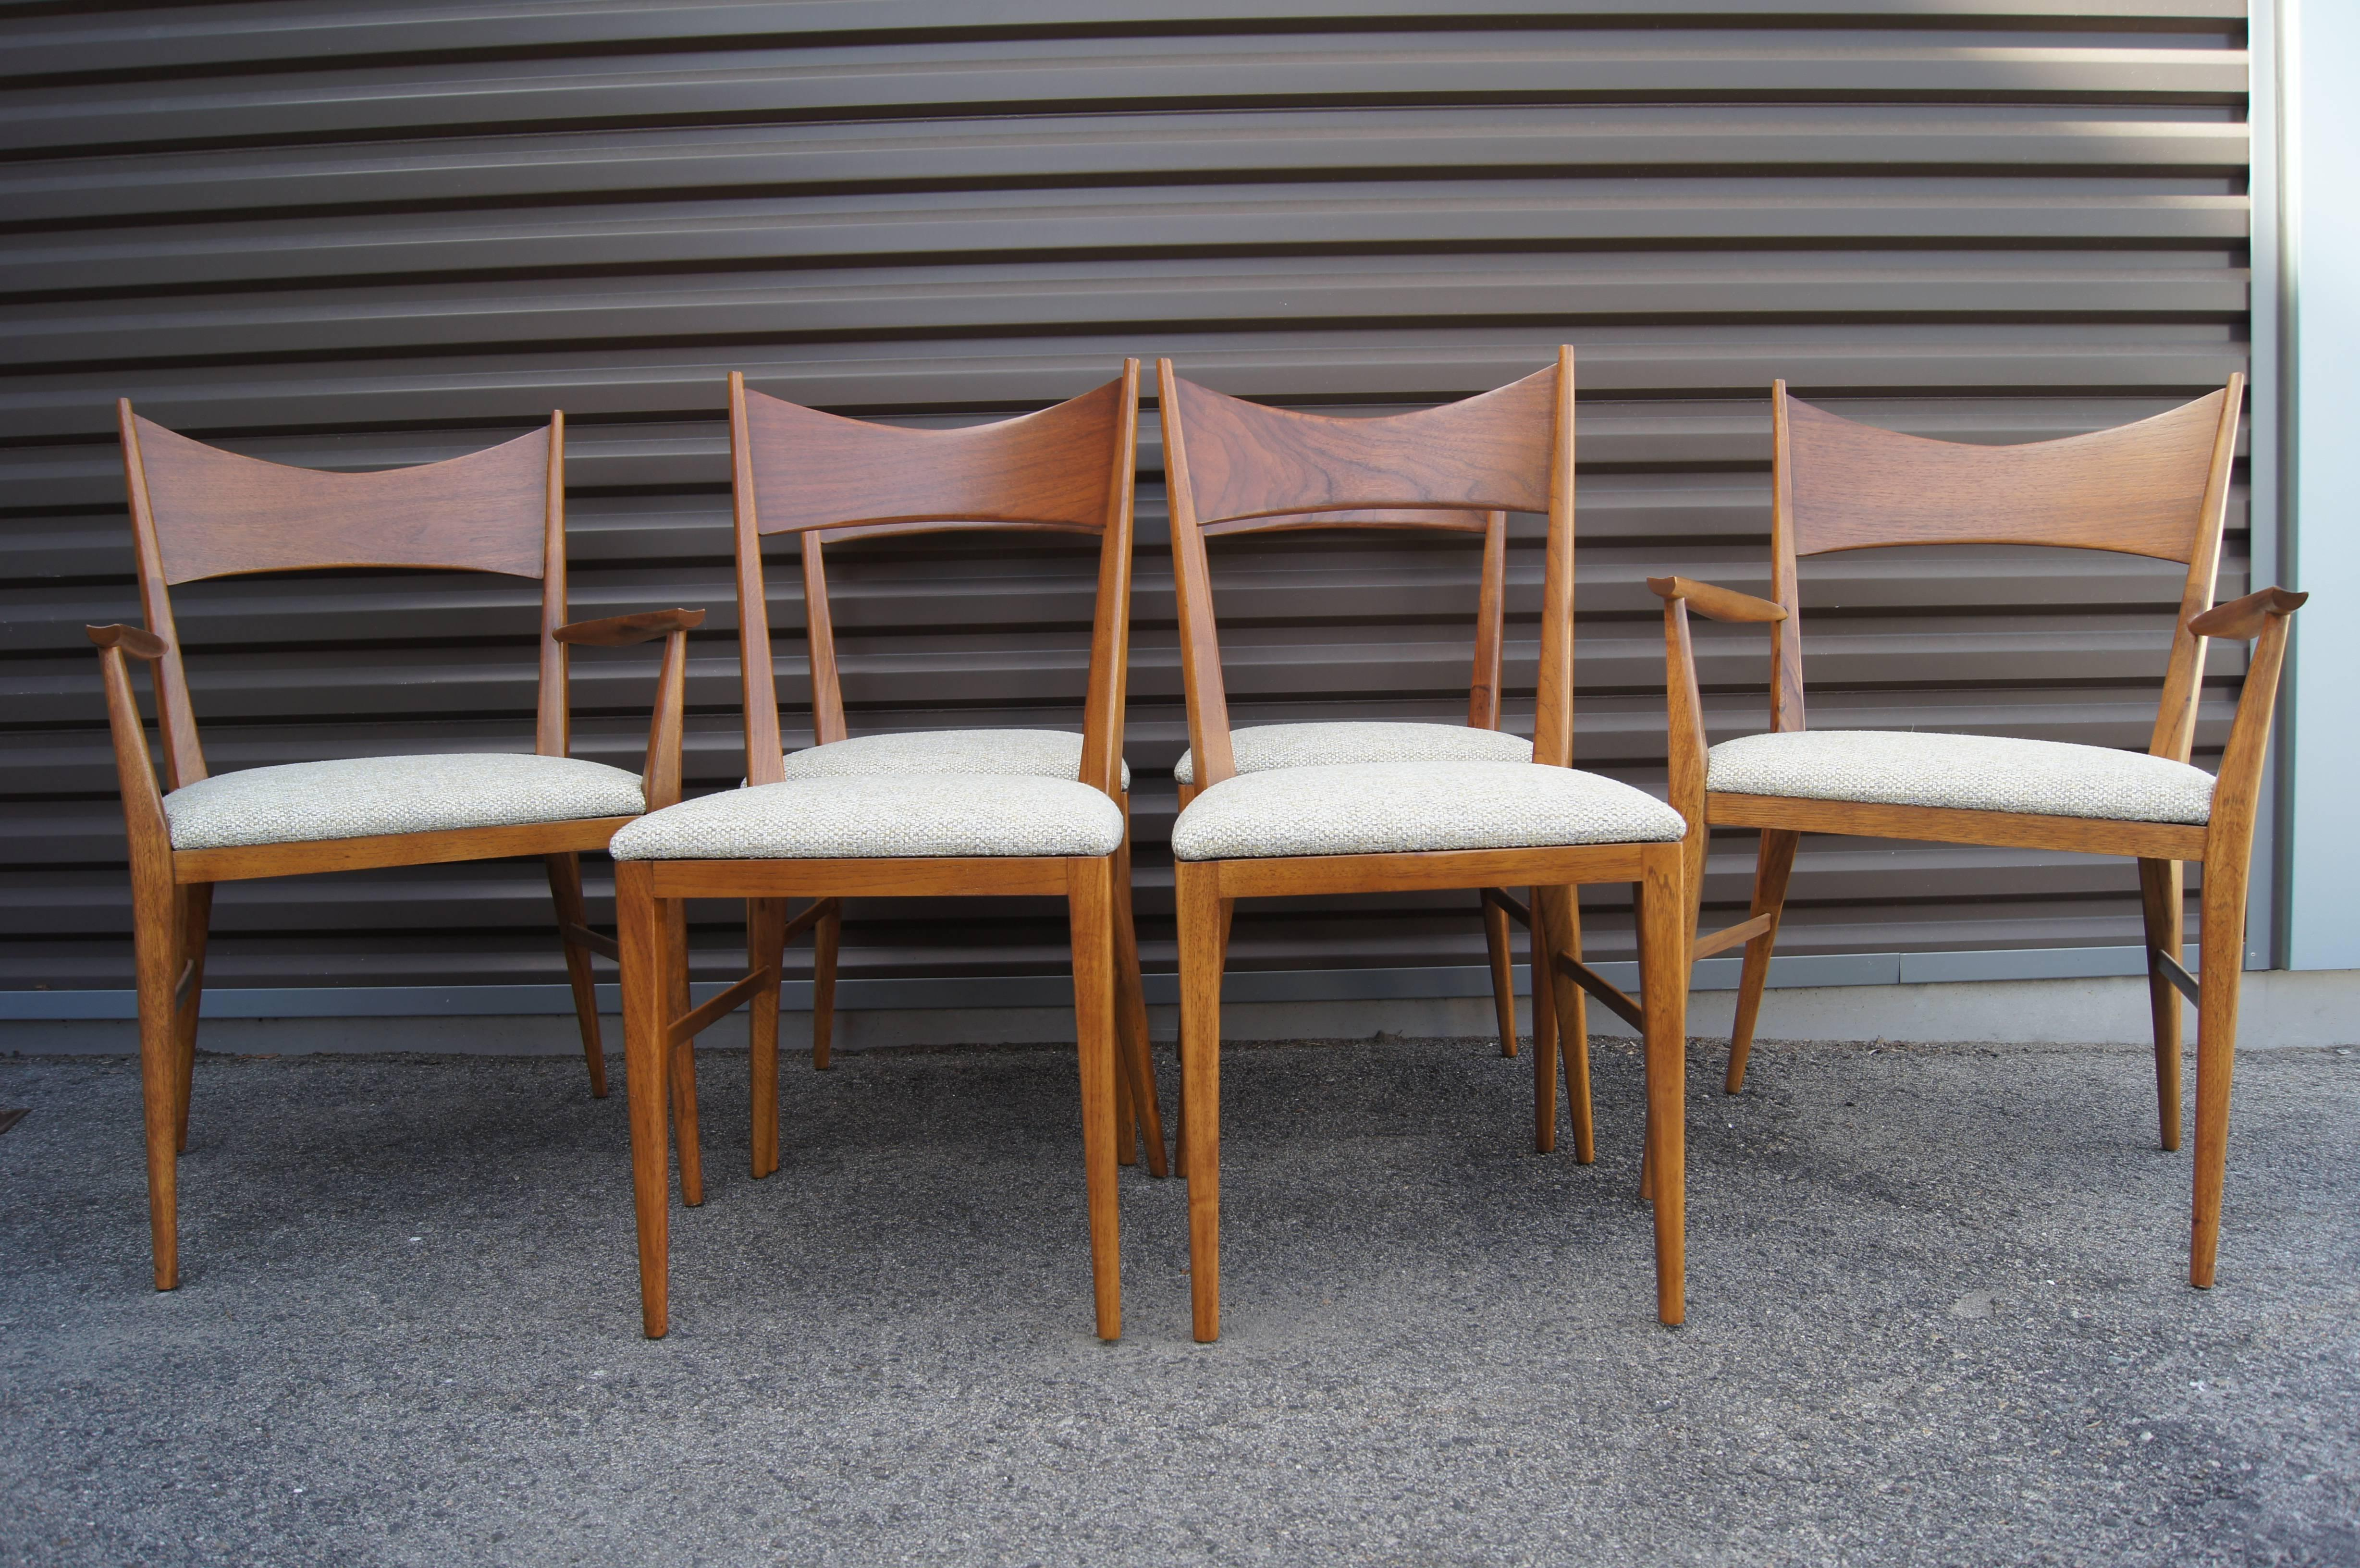 Paul McCobb Designed This Set Of Six Sculptural Walnut Chairs As Part Of  His Irwin Group